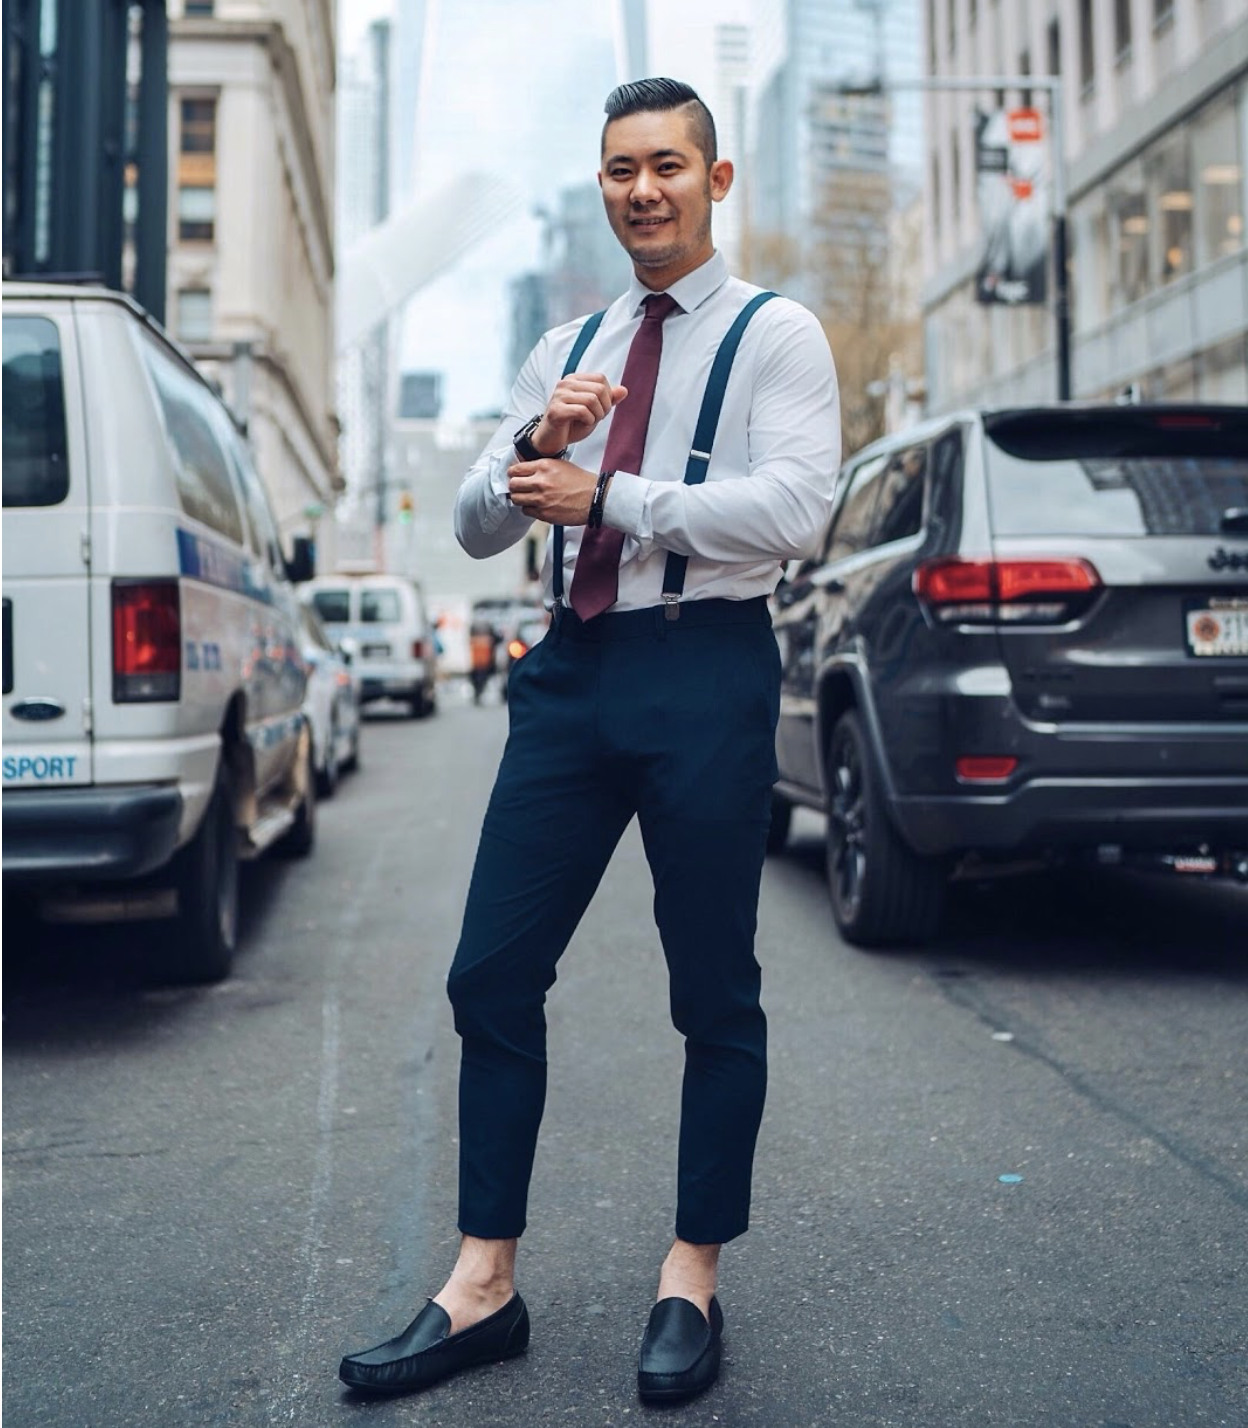 Taking Control Of Your Focus with Jonathan Kung MD